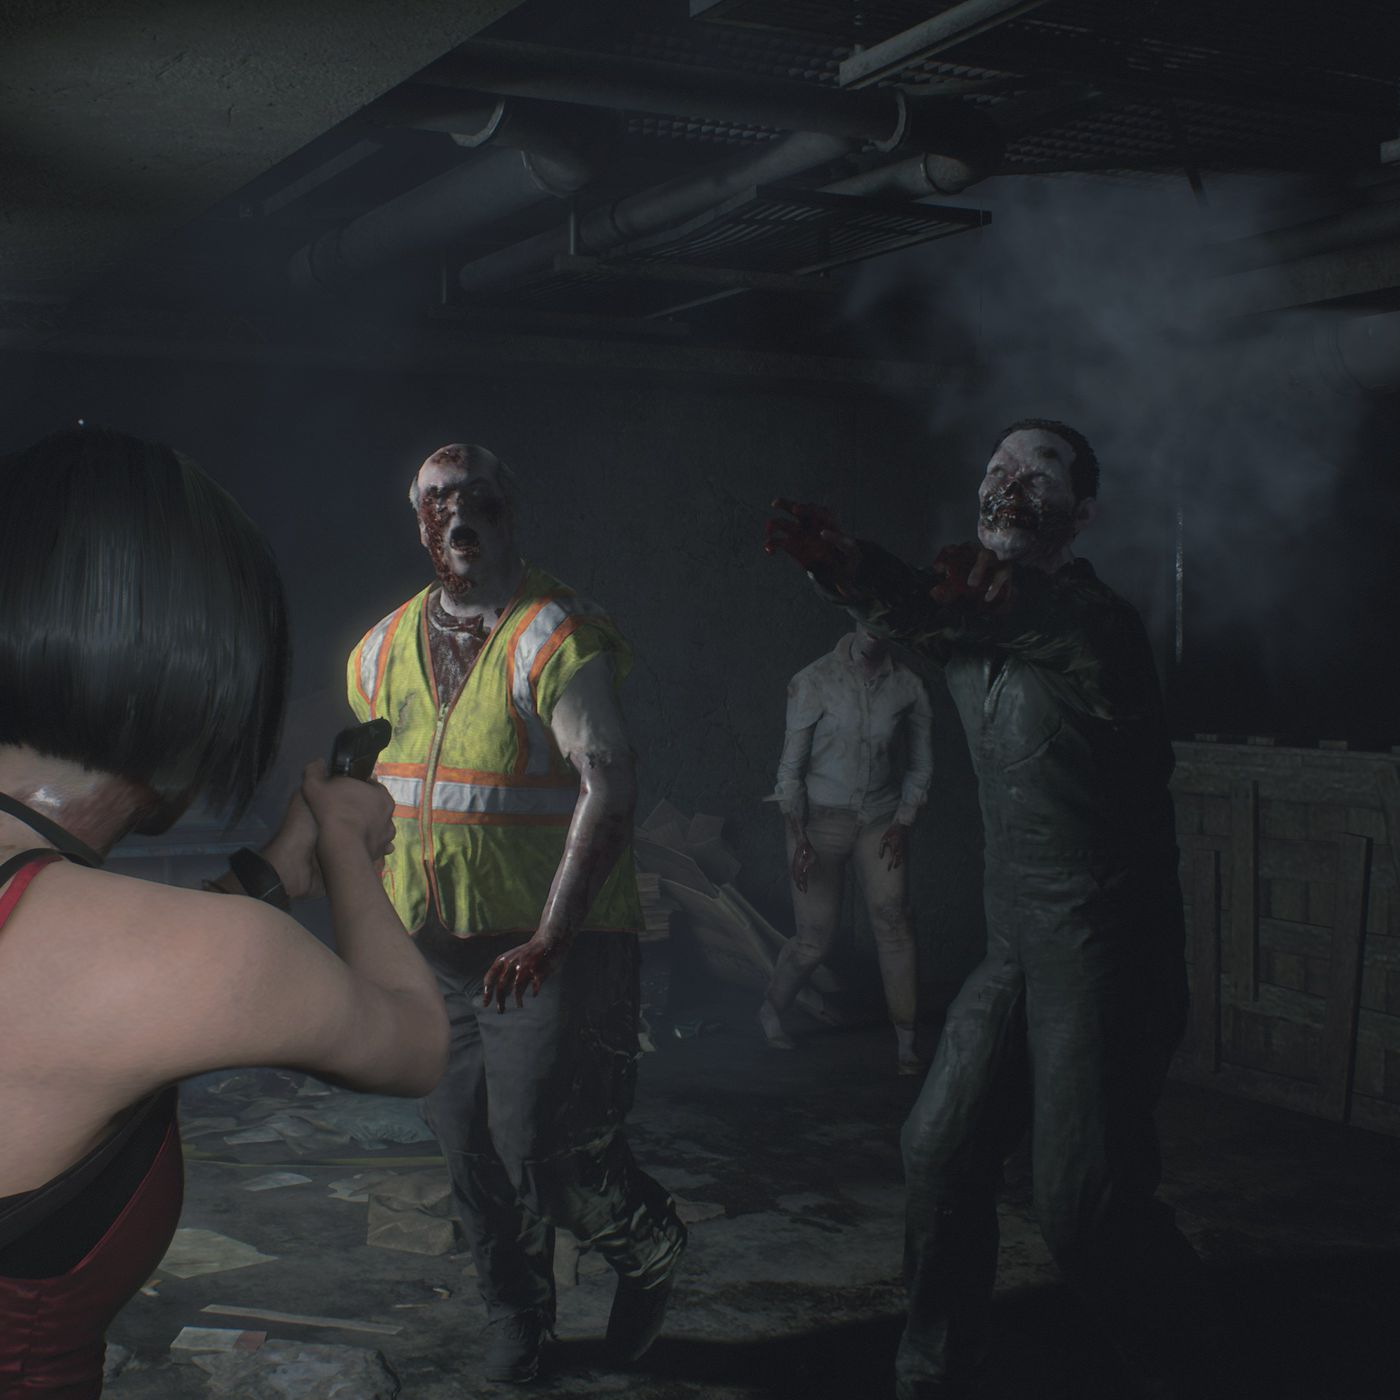 Resident Evil 2 For Pc Is Just 45 For Readers Of The Verge The